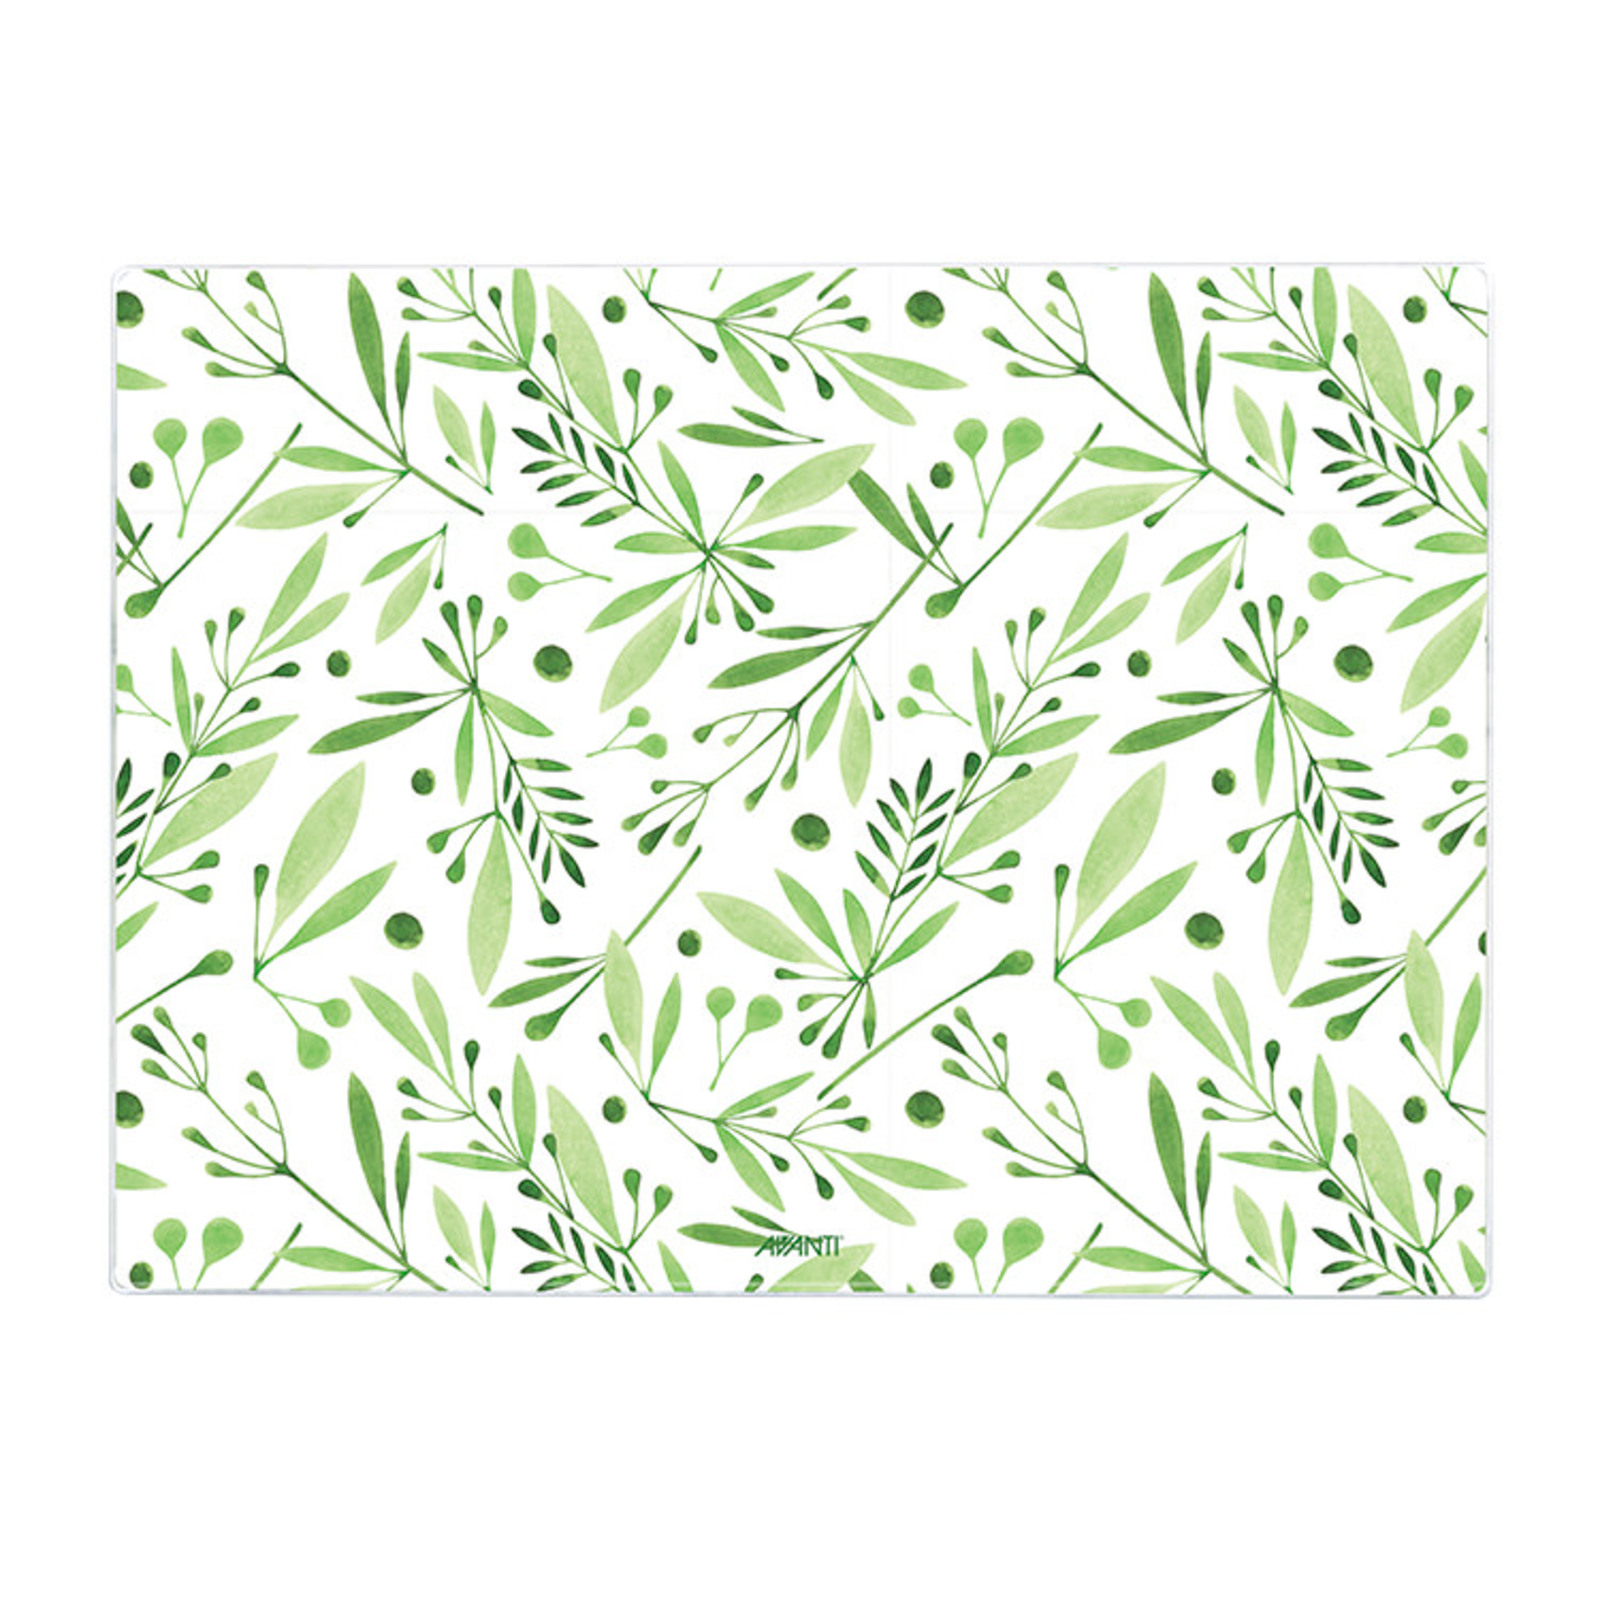 Avanti Tempered Glass Surface Protector 30x40x4cm Olive Branch